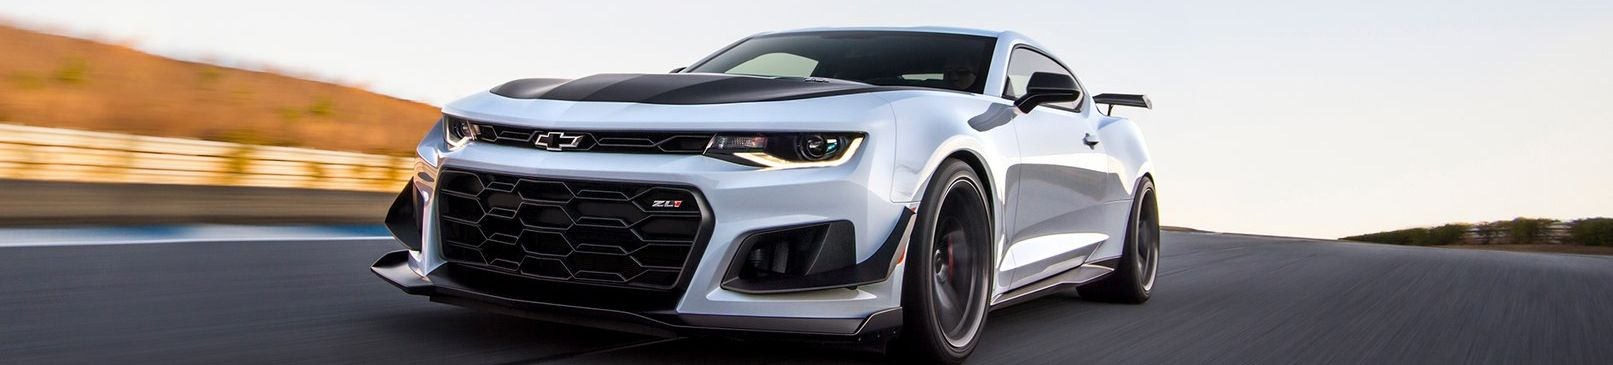 2018 Chevrolet Camaro Leasing in Elk Grove, CA